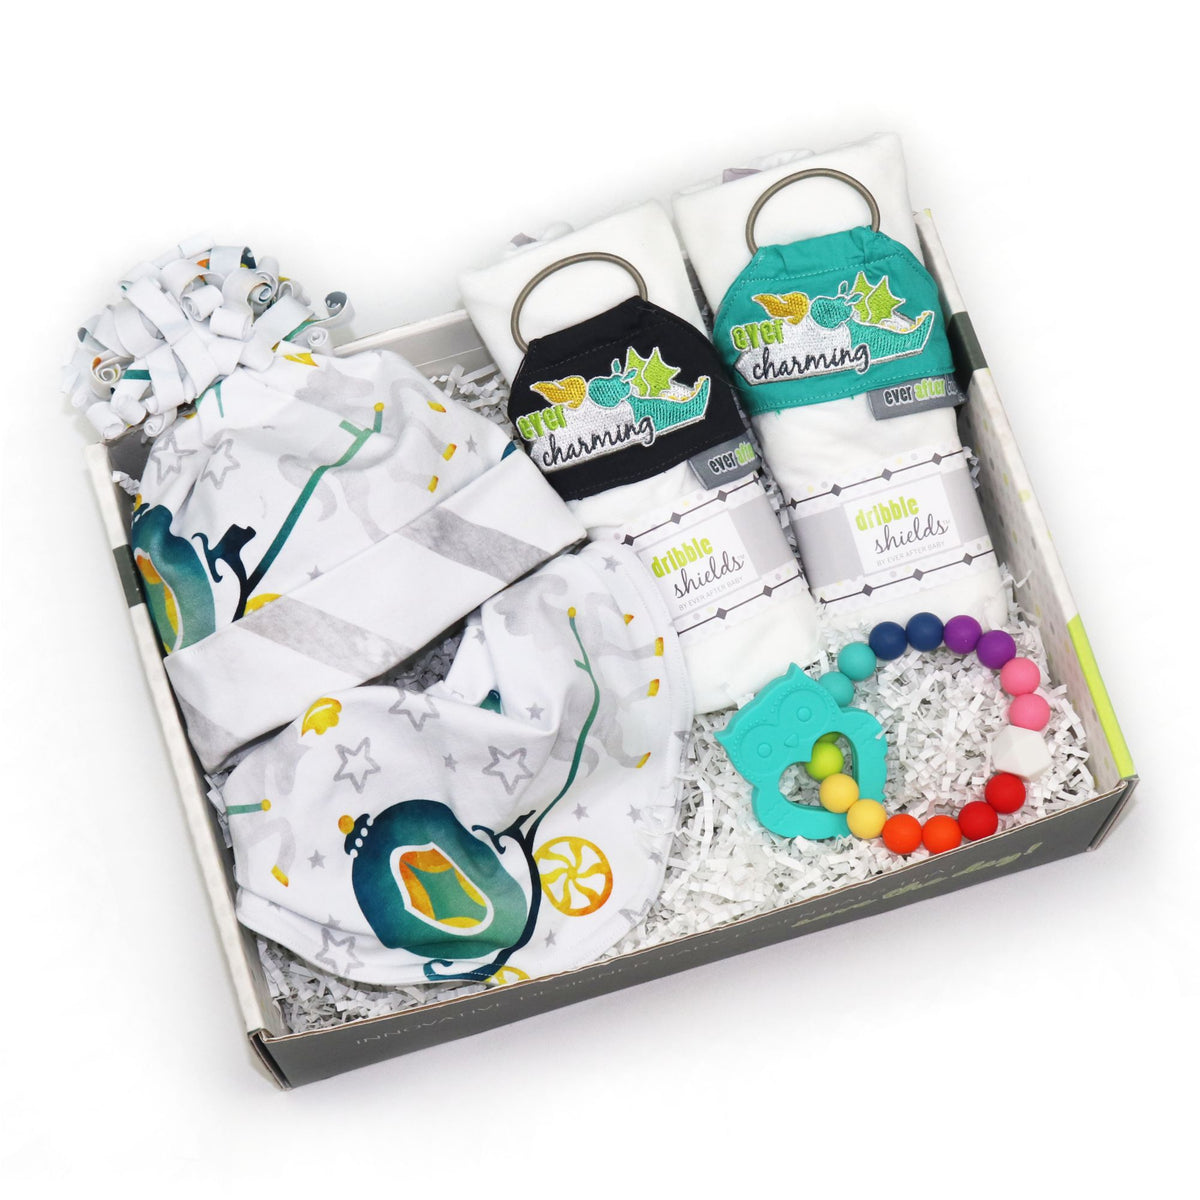 Royal Style Baby Box in Charming Carriage (3885635633186)